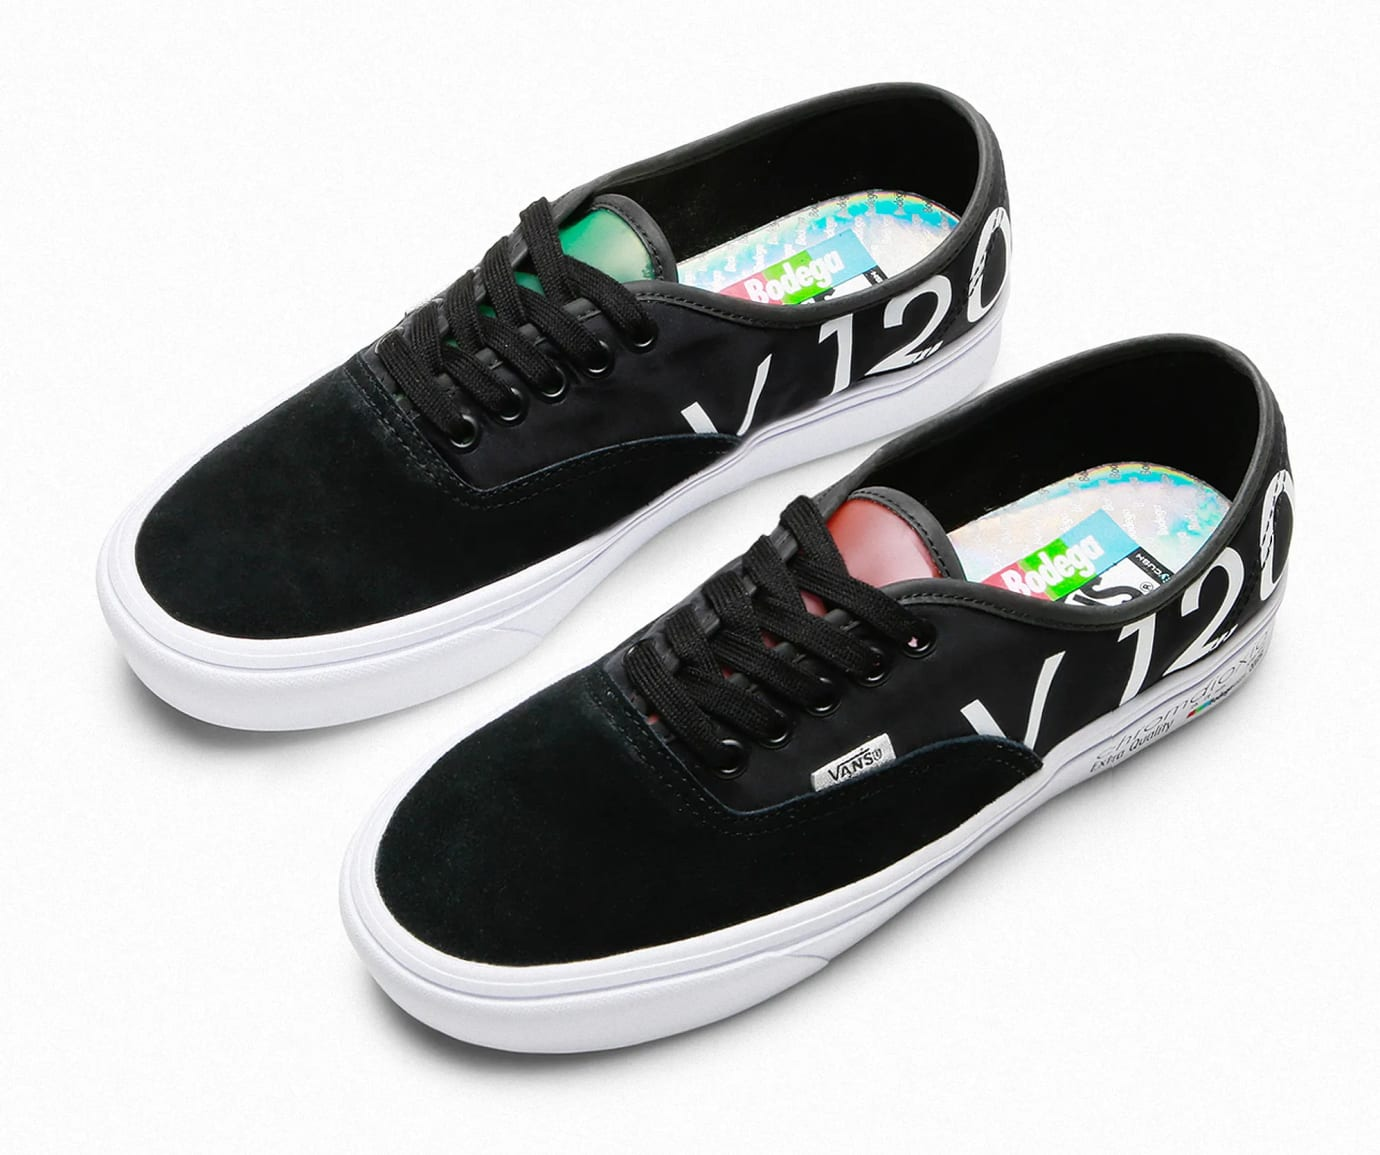 Bodega x Vault by Vans Authentic 'Blank Tapes' (Pair)